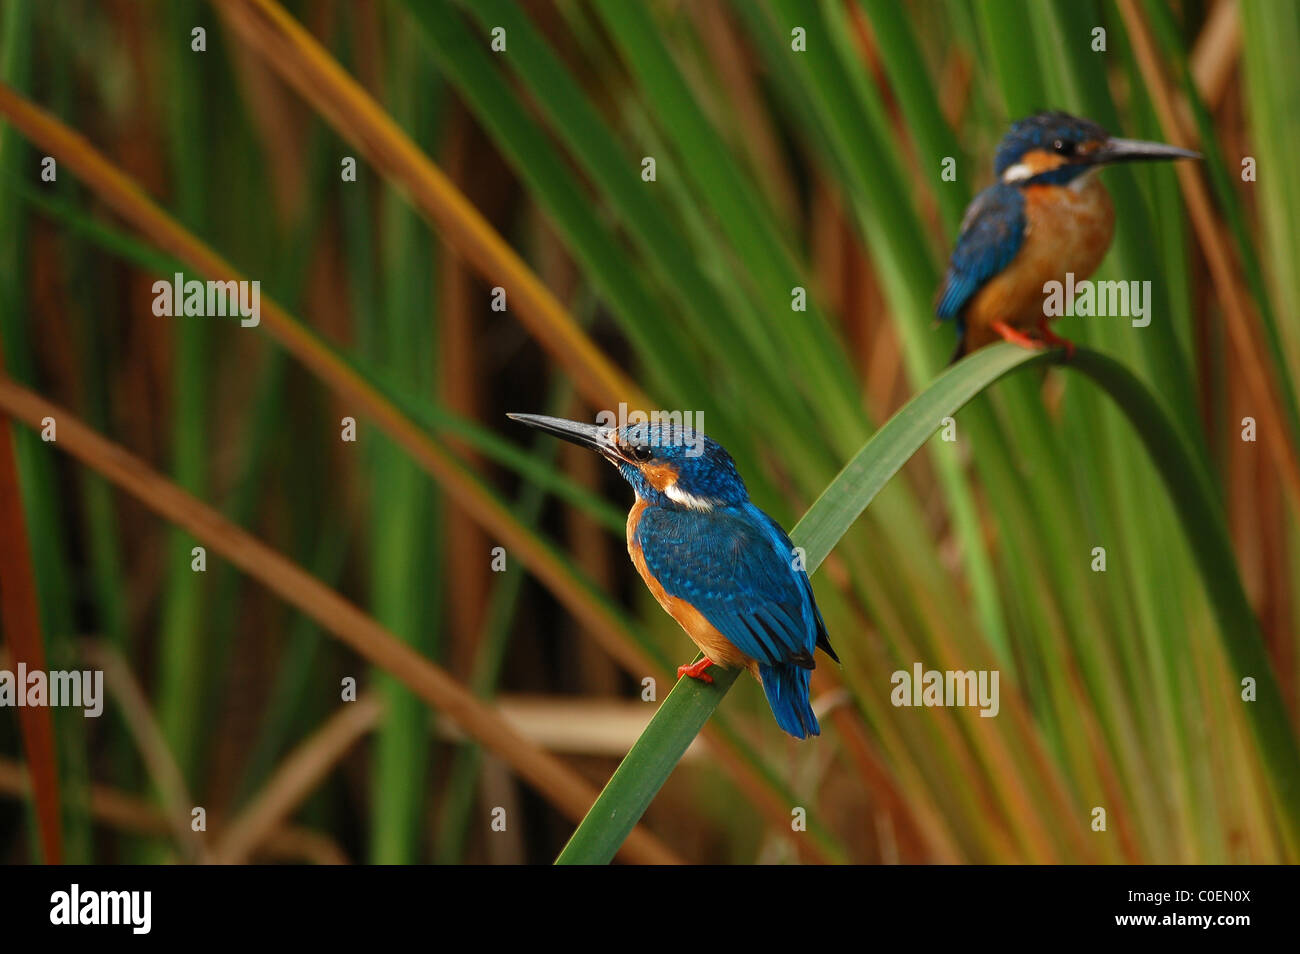 Two Common or Small Blue Kingfishers sitting on a single grass blade with a colourful background in a lake near - Stock Image